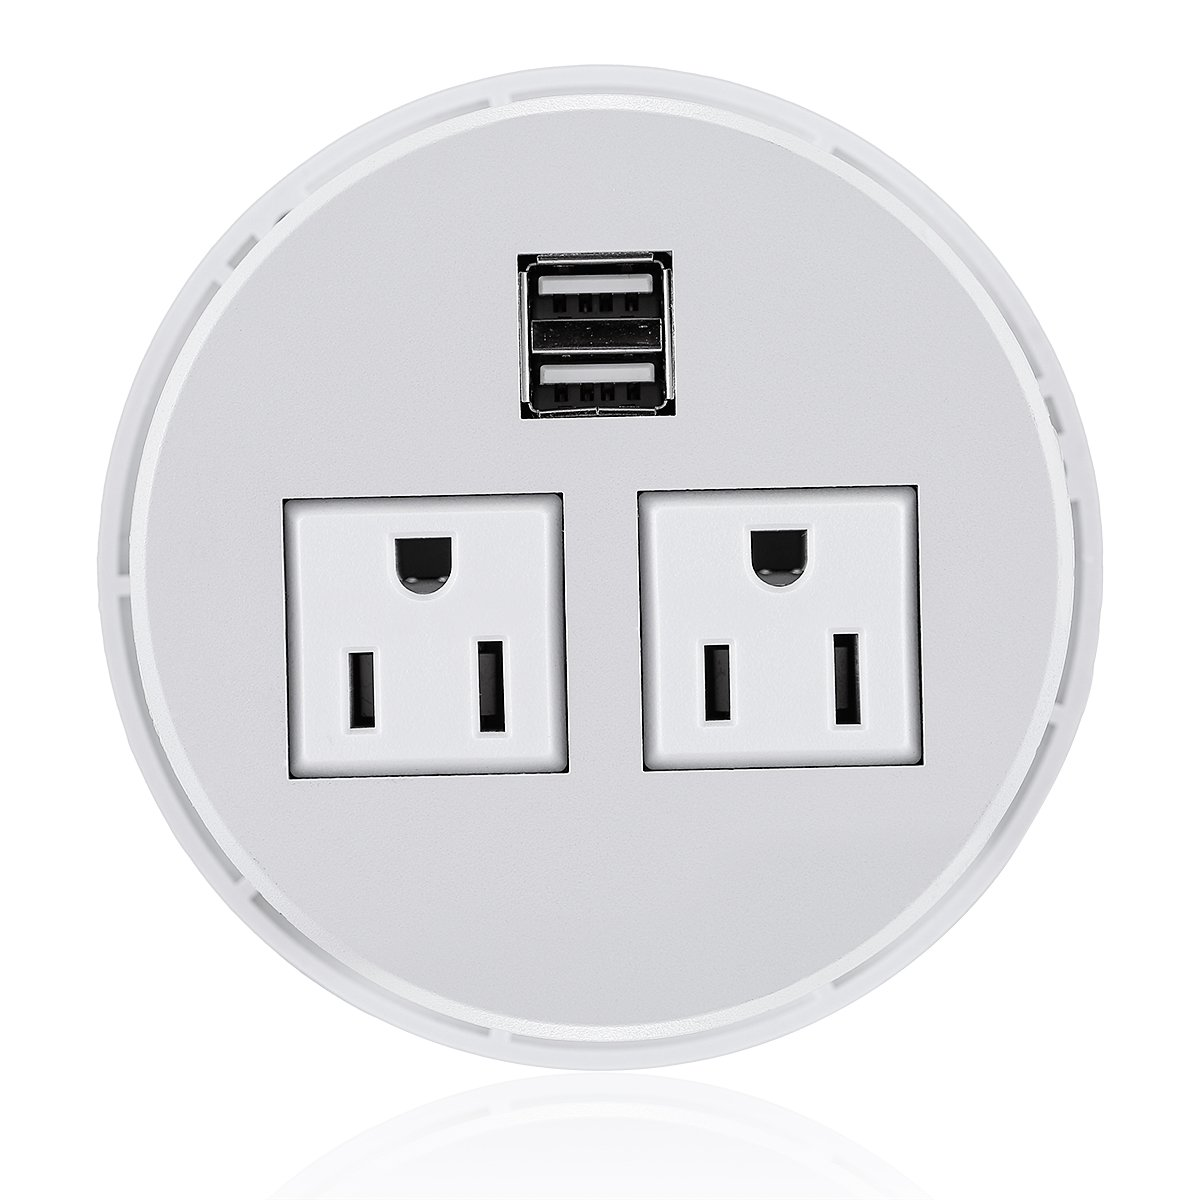 Desktop Power Grommet Hub 2 Power Socket & Dual USB Ports For Office Desk Table Durable Plastic Top (White) with 6 FT Power Cord